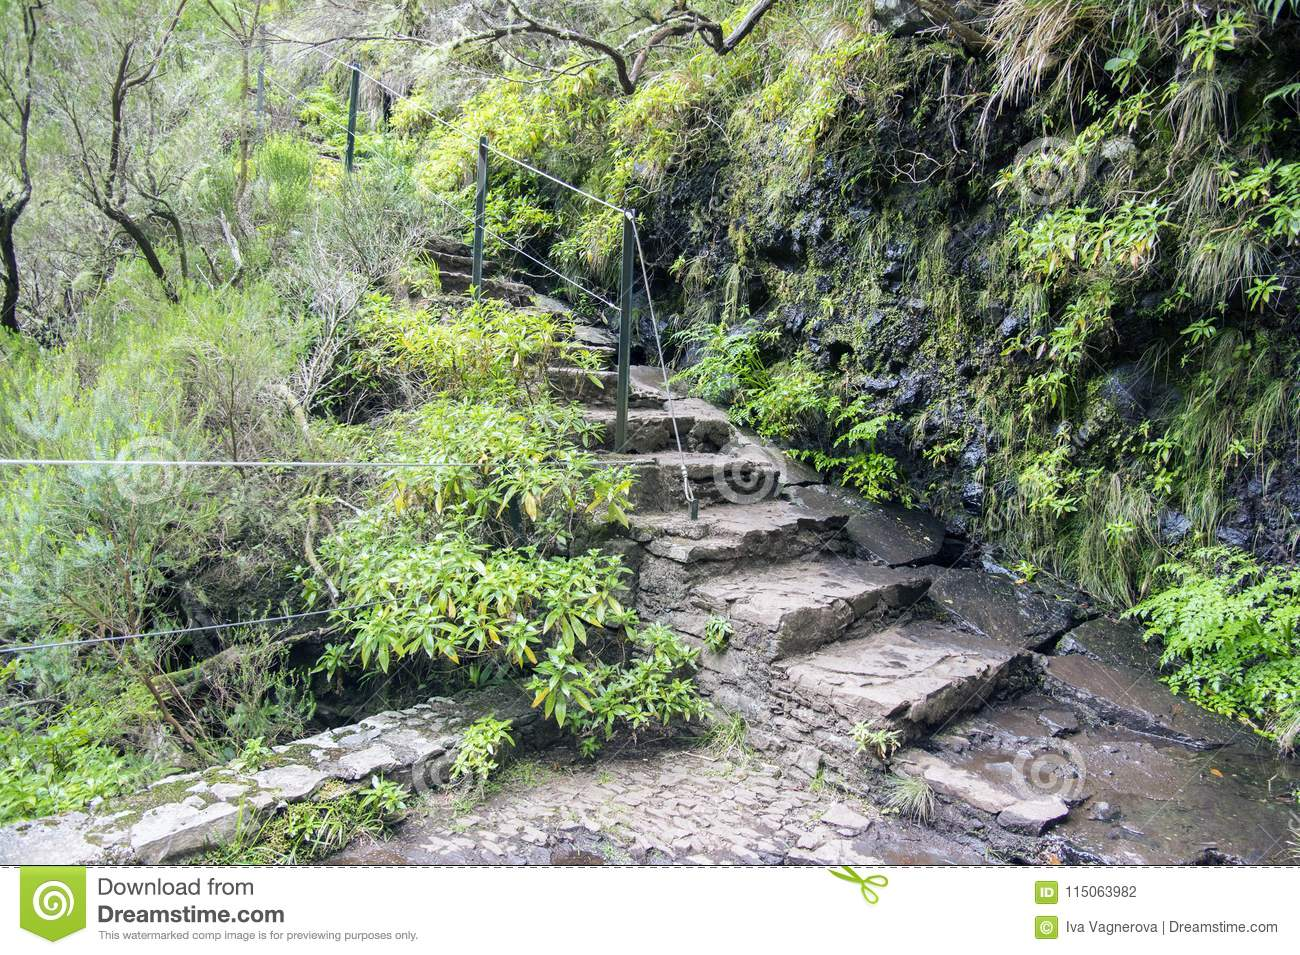 Stairs To Levada Das 25 Fontes, Touristic Hiking Trail, Rabacal.